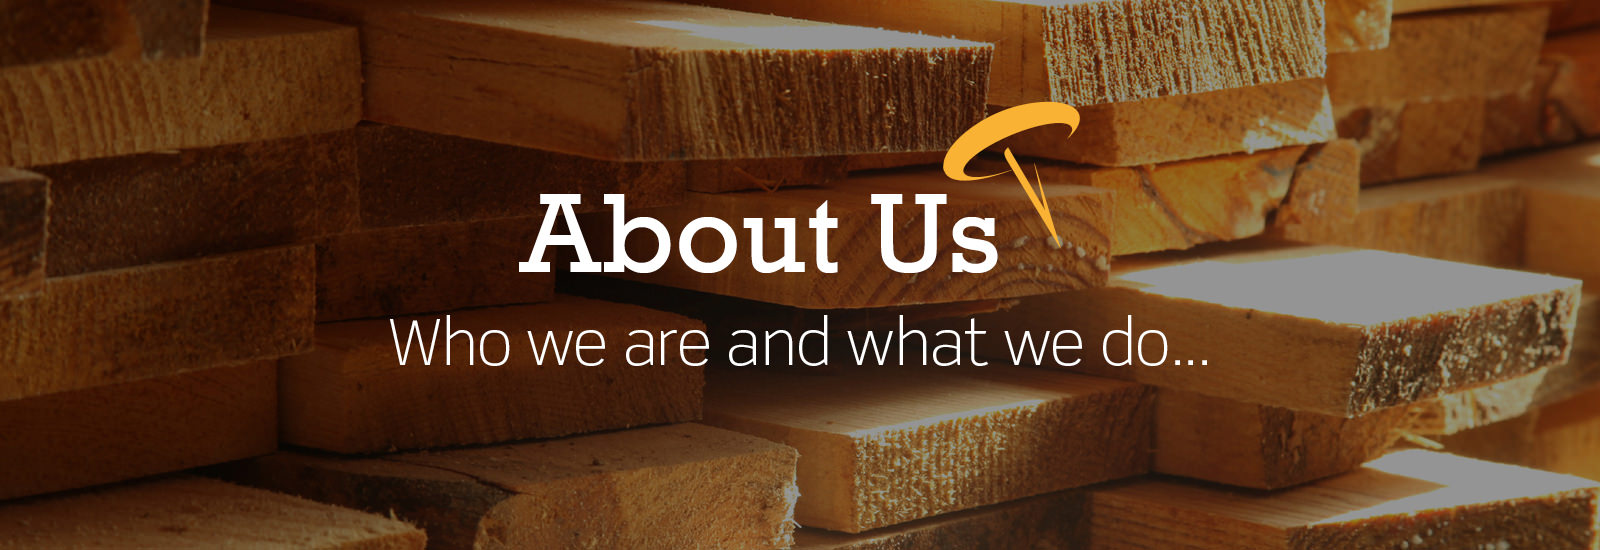 About Us - Who we are and what we do...